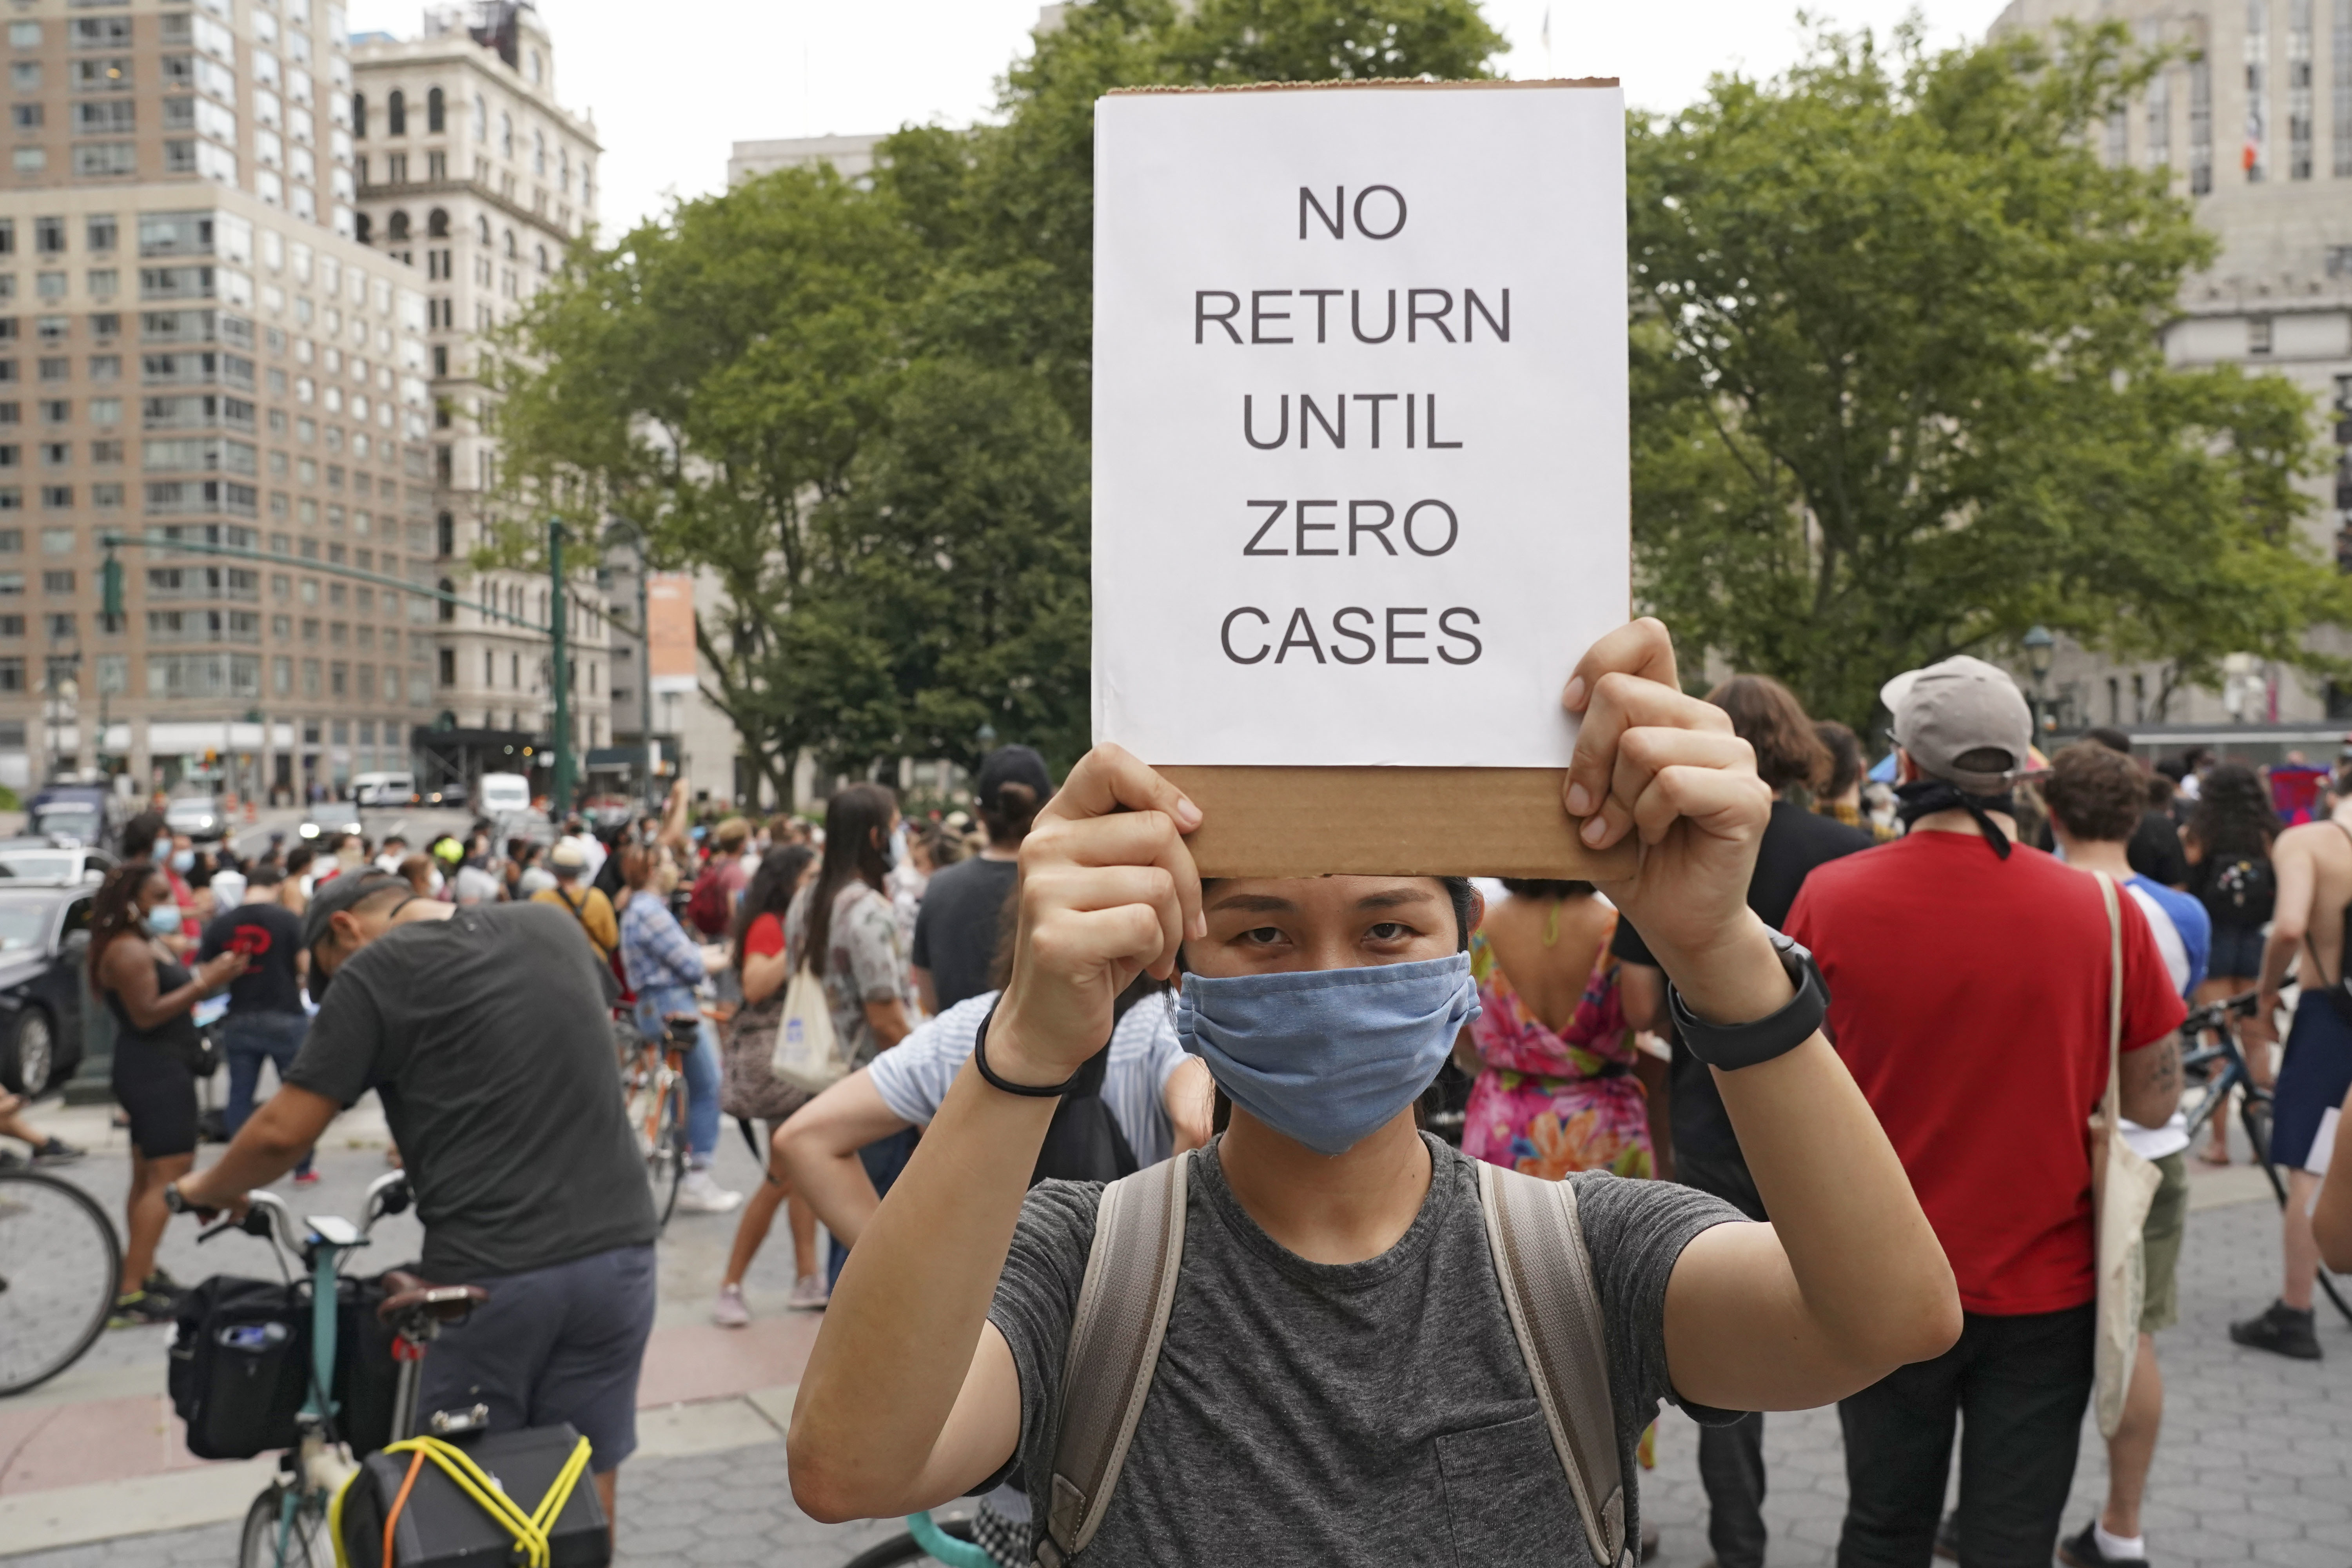 Protest against reopening of schools in New York, US - 03 Aug 2020